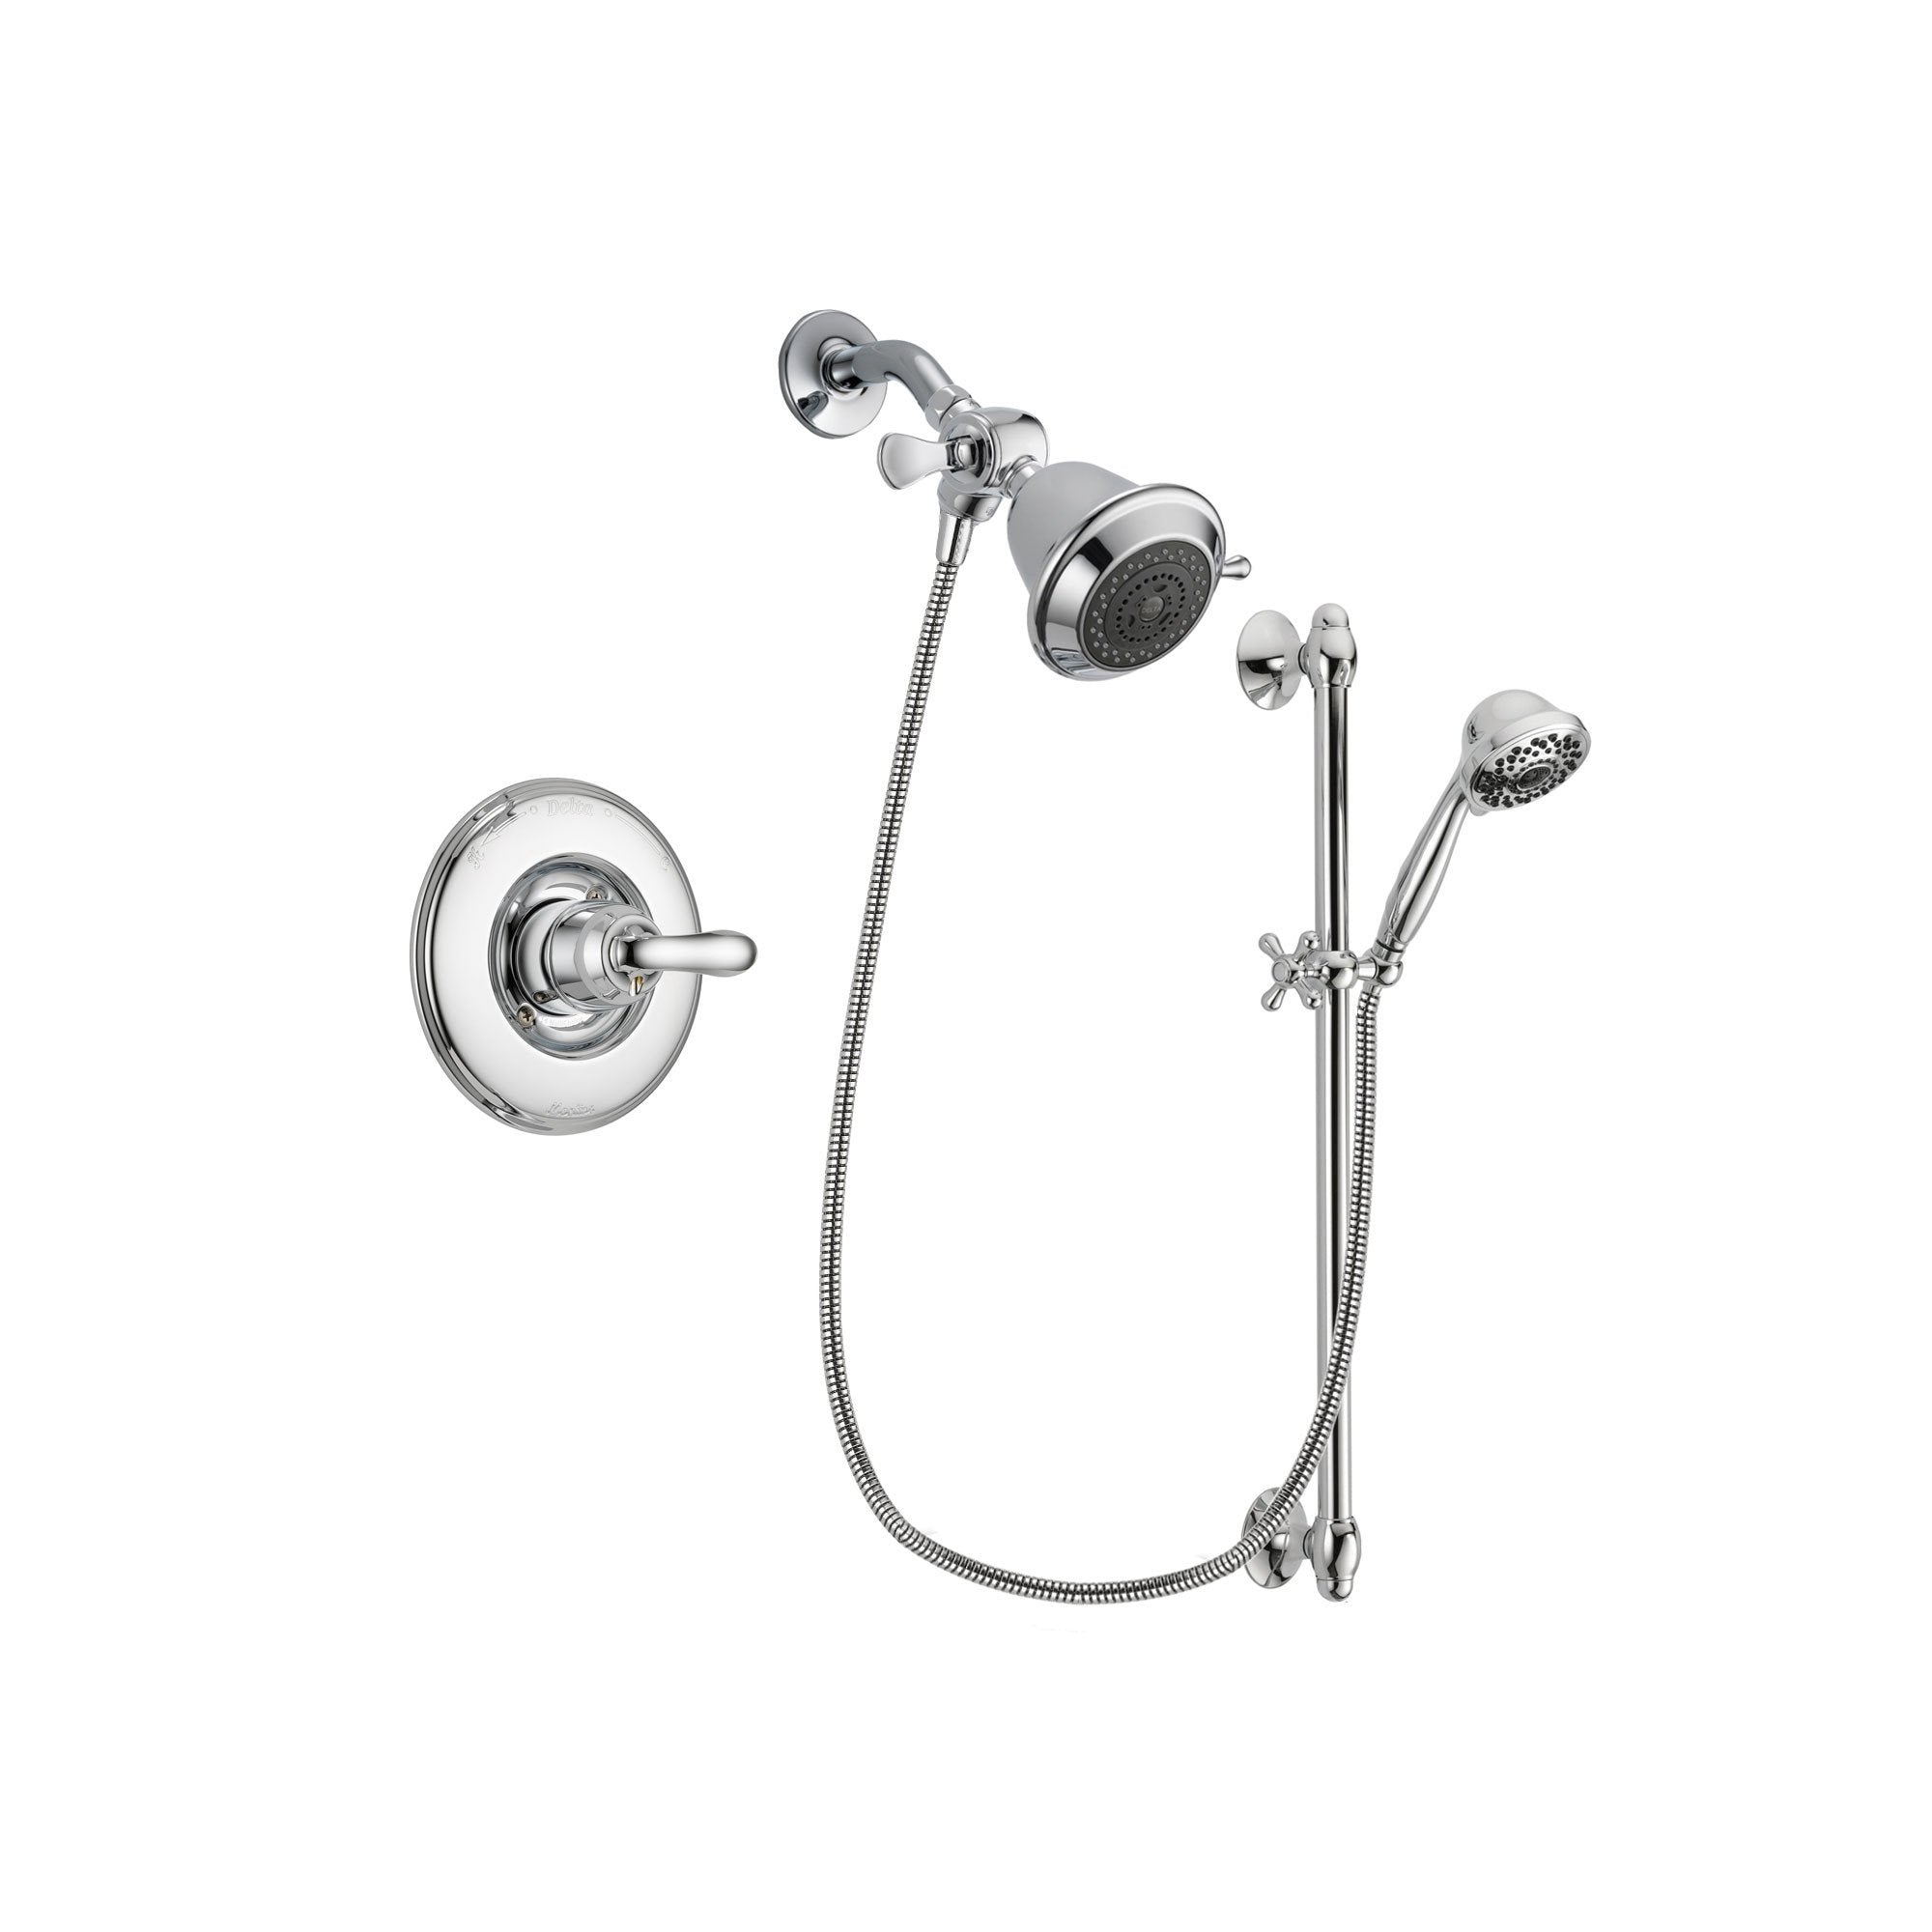 Delta Linden Chrome Shower Faucet System w/ Shower Head and Hand Shower DSP0580V